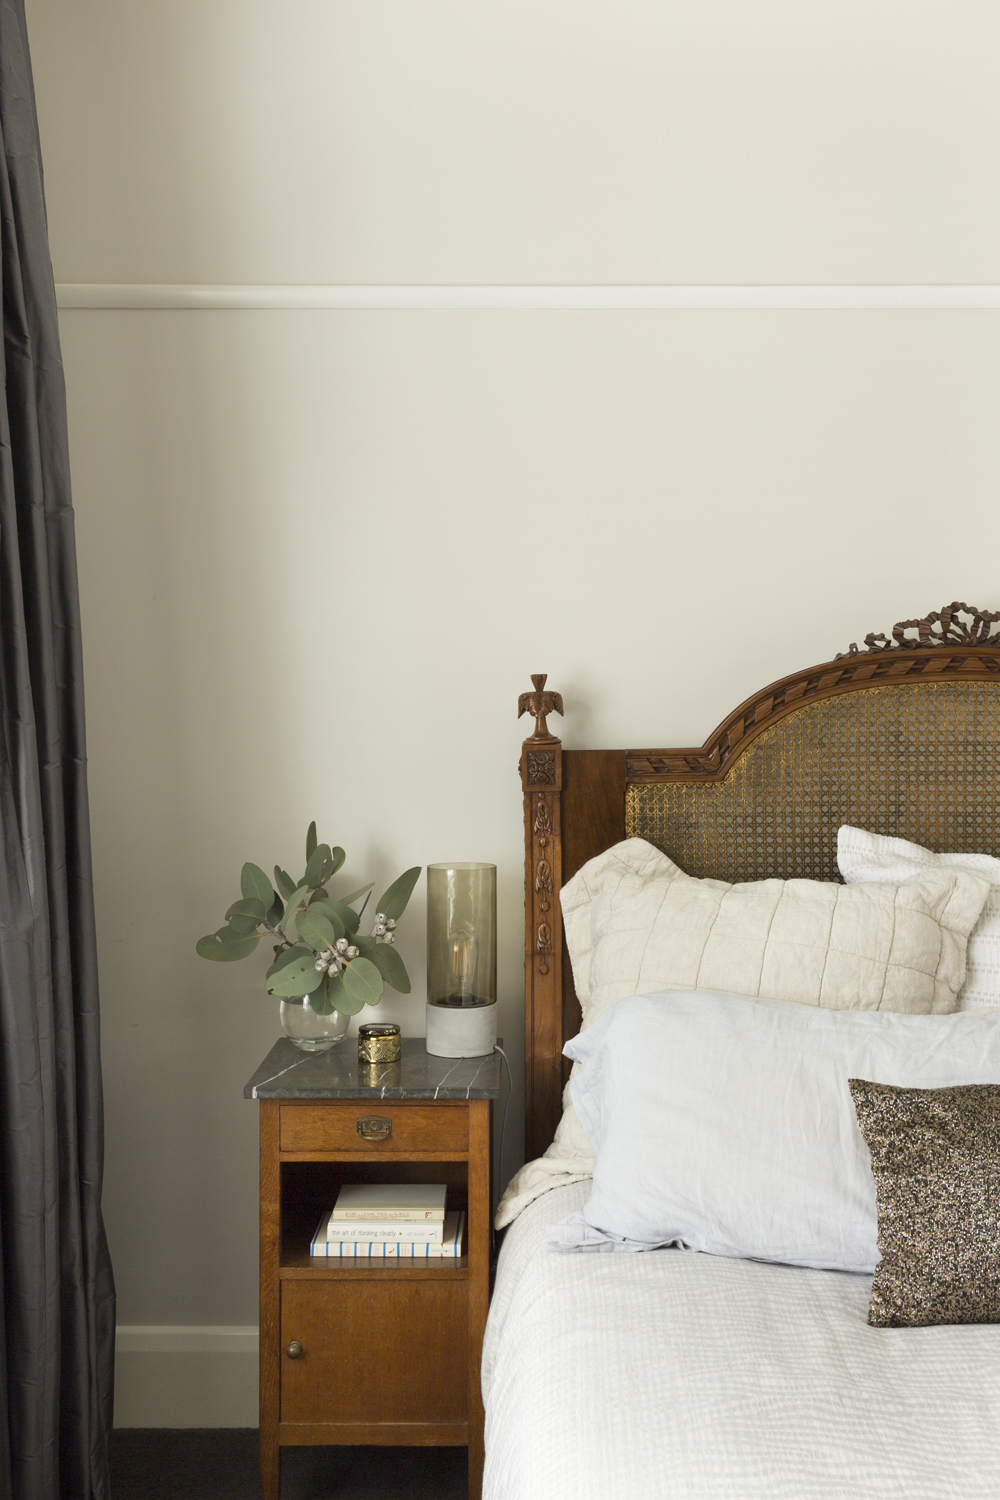 bedroom design Interior designer Melbourne Clifton Hill Interior decorator design ideas house design curtains